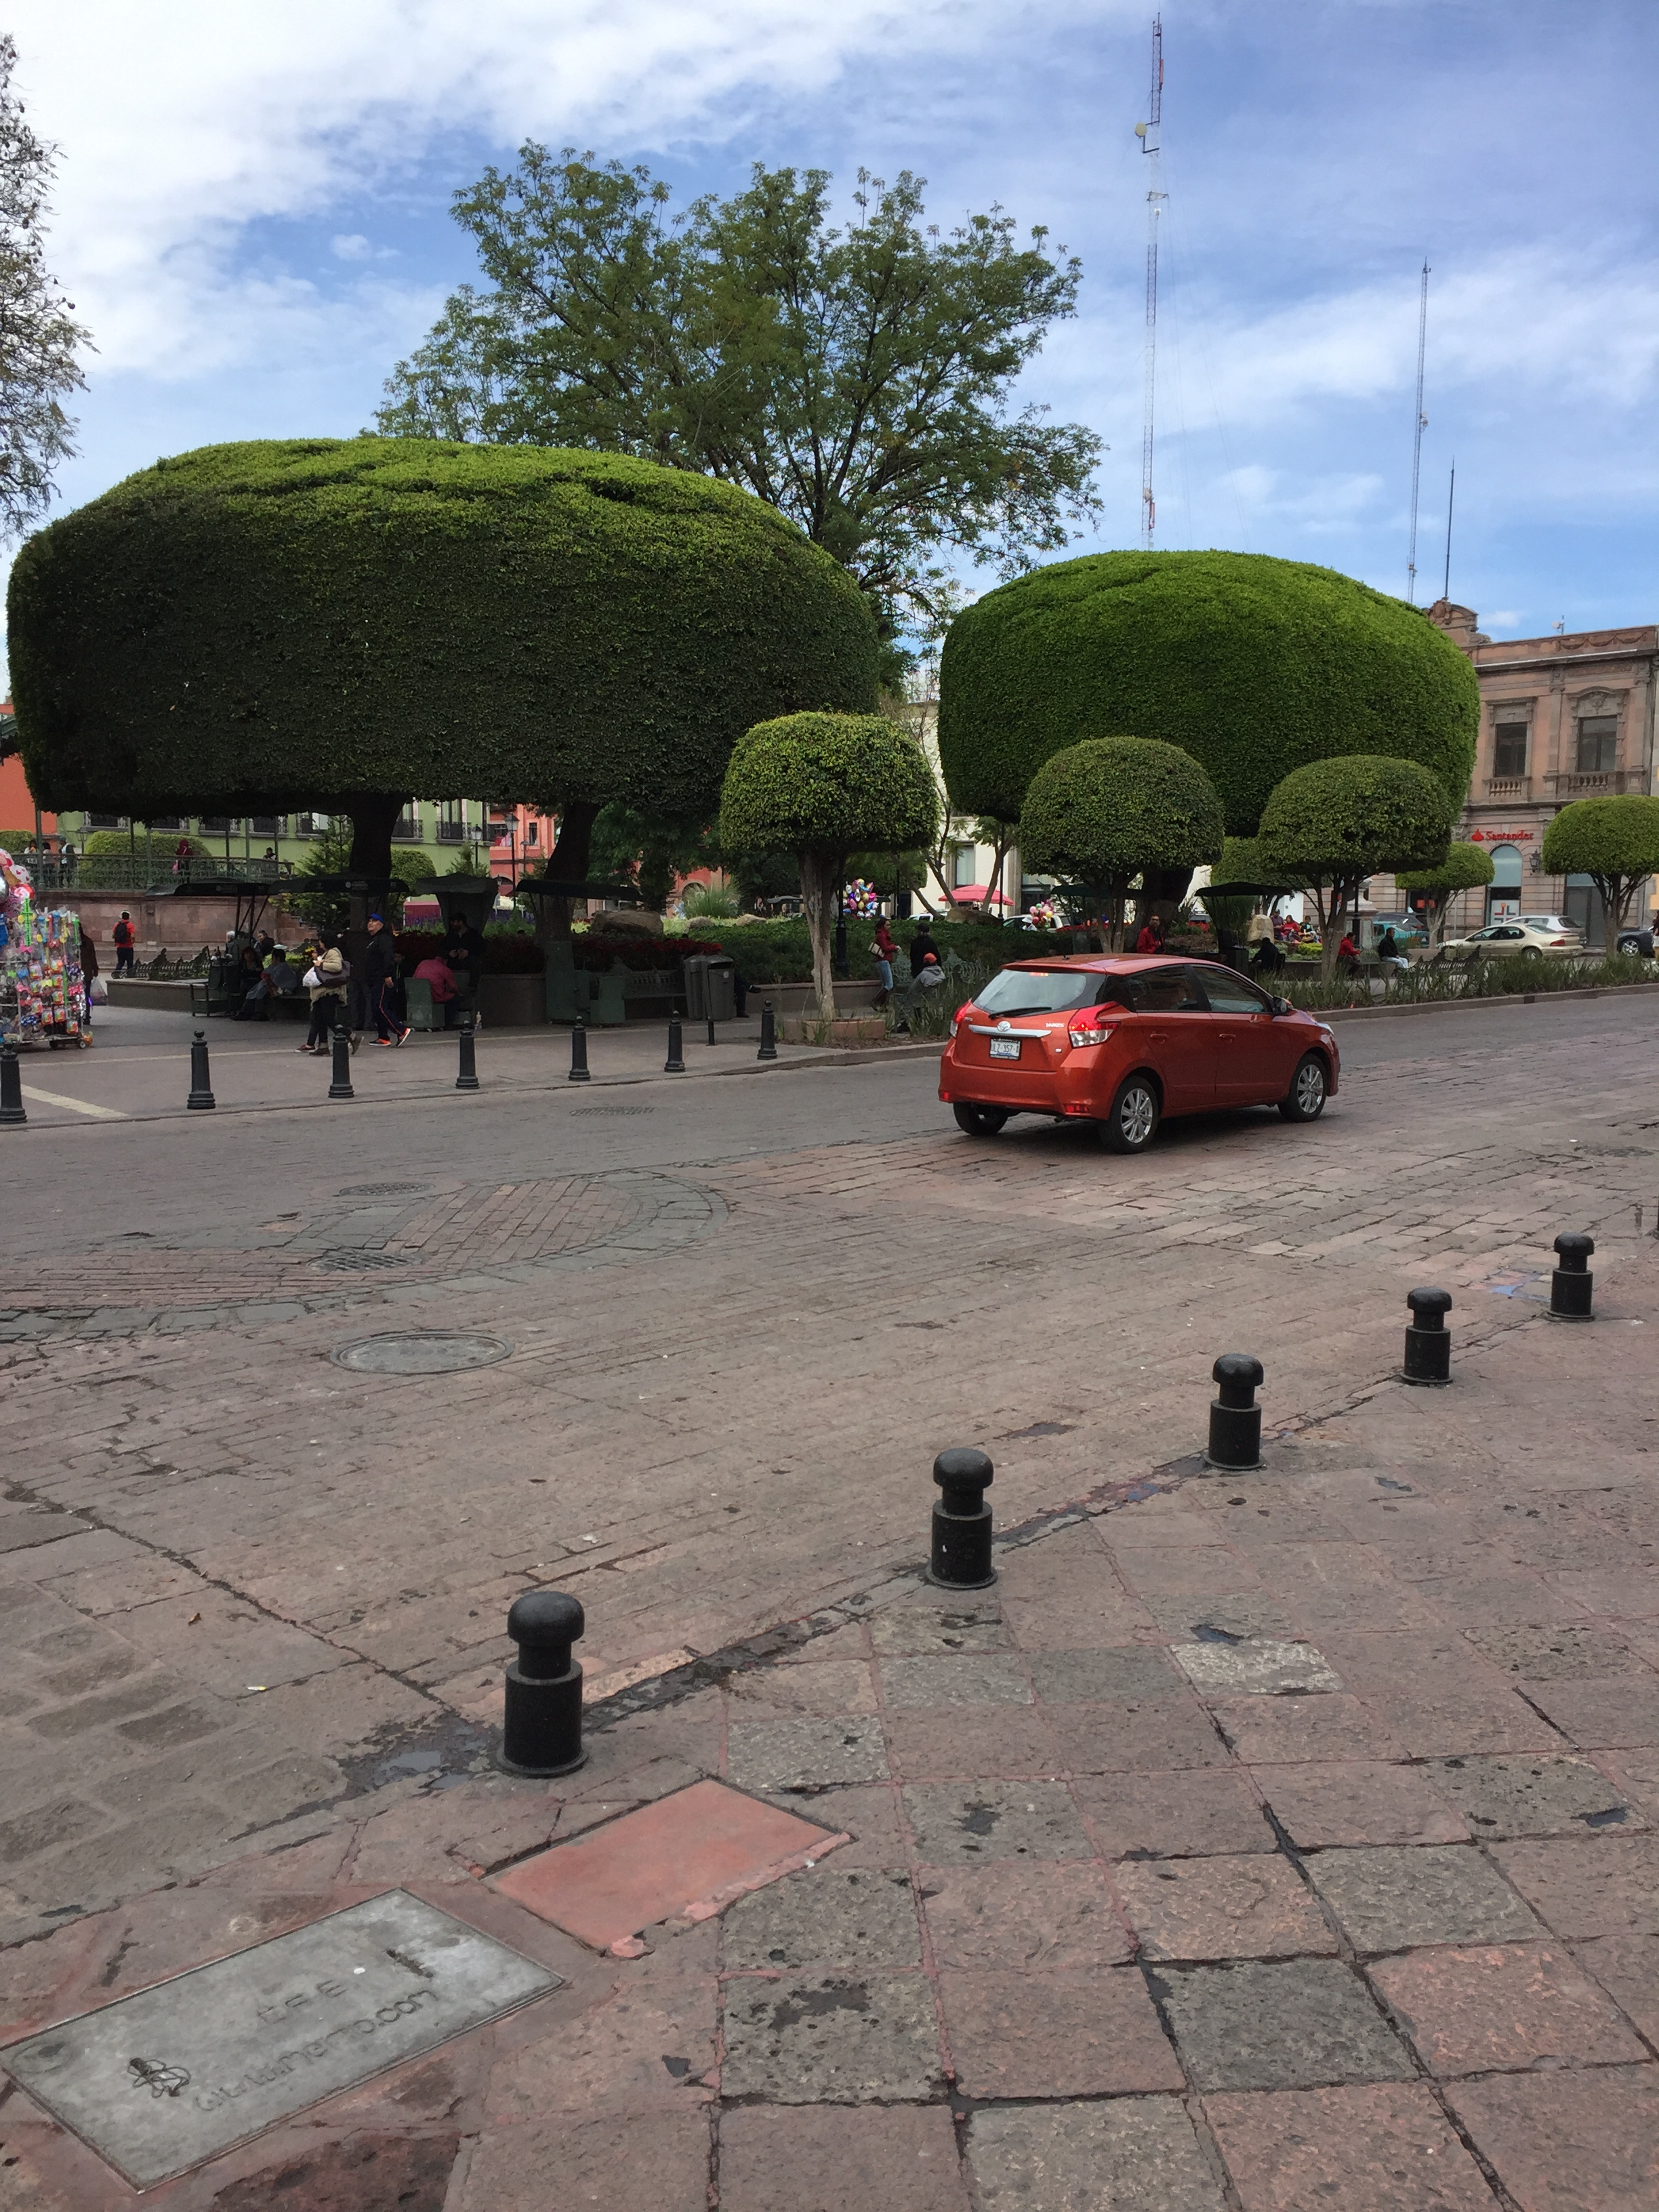 Considered The Safest City In Mexico, Querétaro Also Has One Of The Highest  Standards Of Living. It Is Clean, Well Maintained And Has Been Named The  U0027most ...